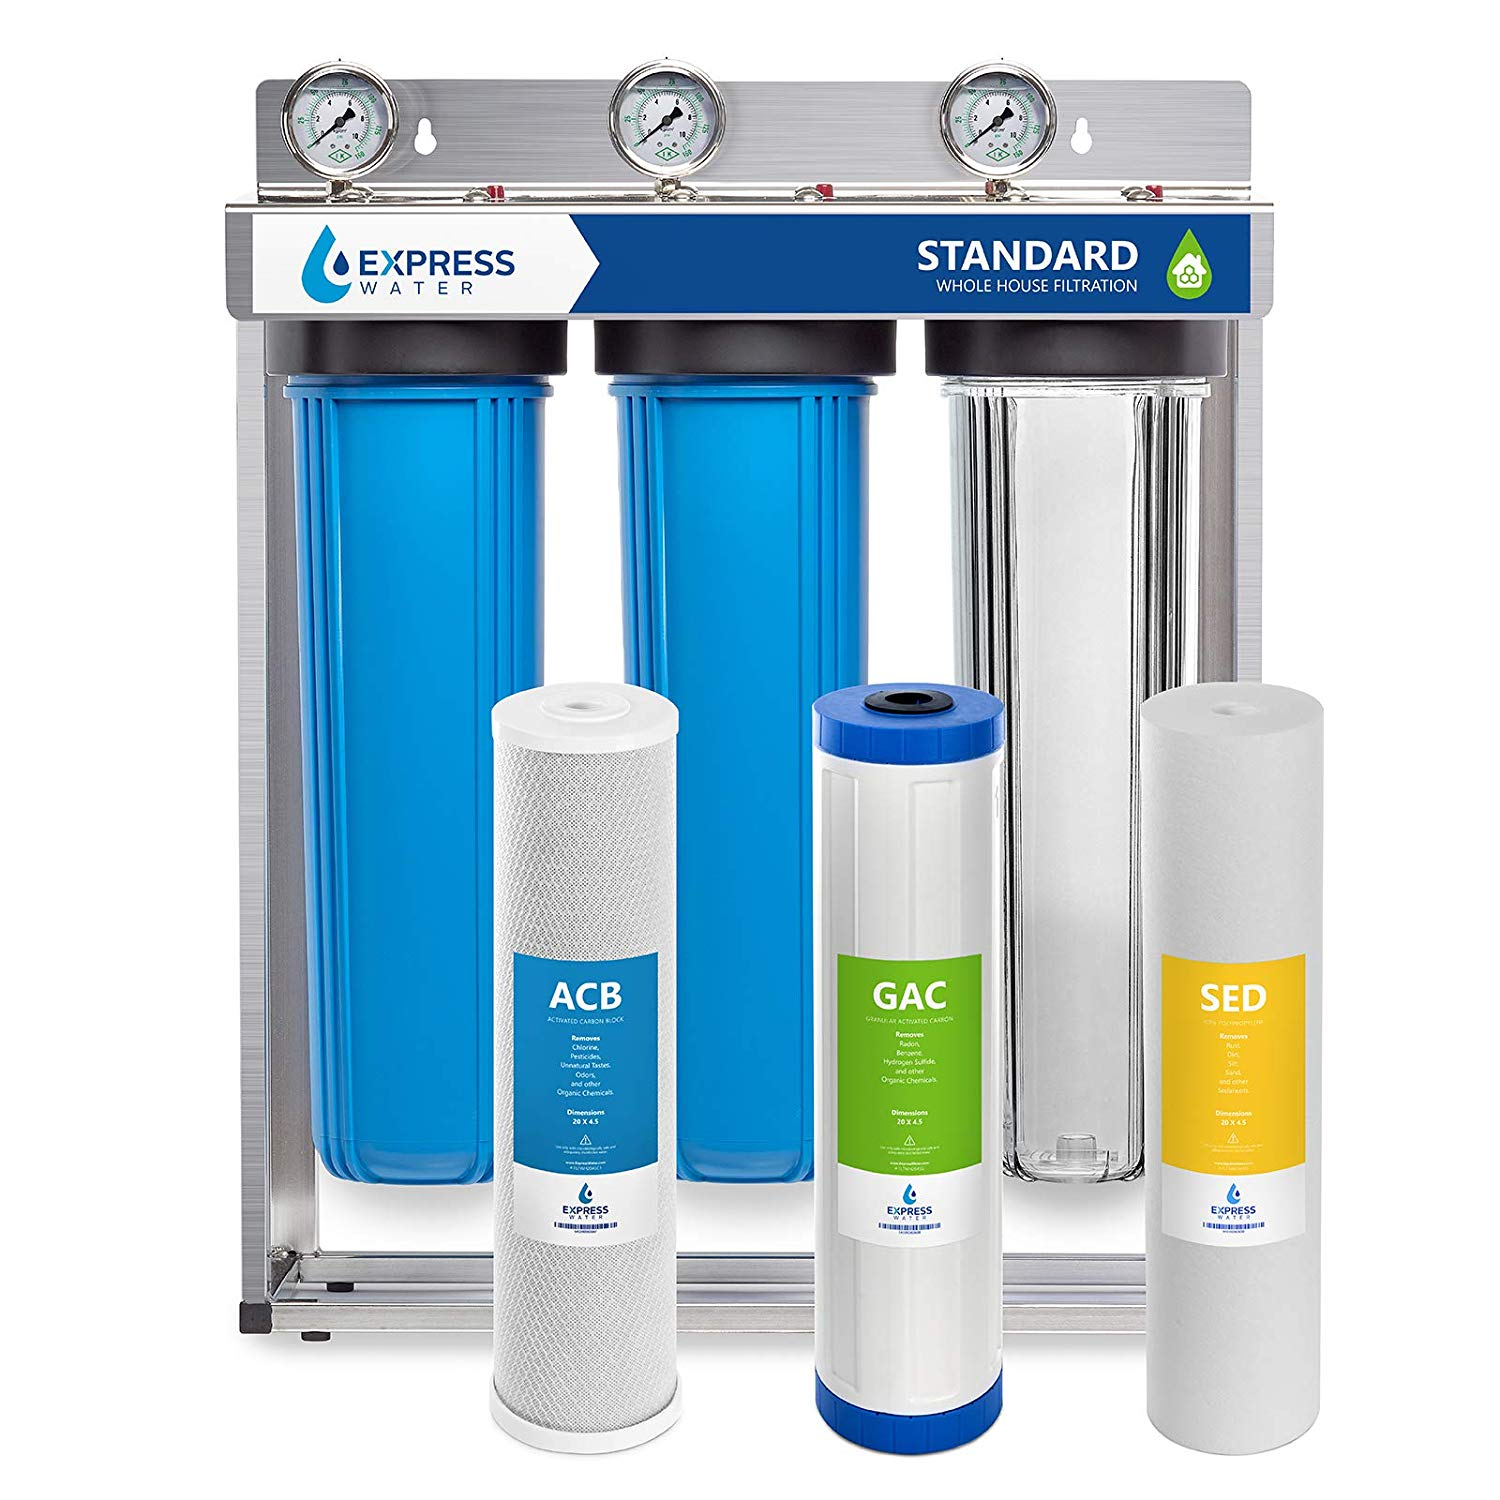 Express Water Whole House Water Filter, 3 Stage Home Water Filtration System - Water Purifier